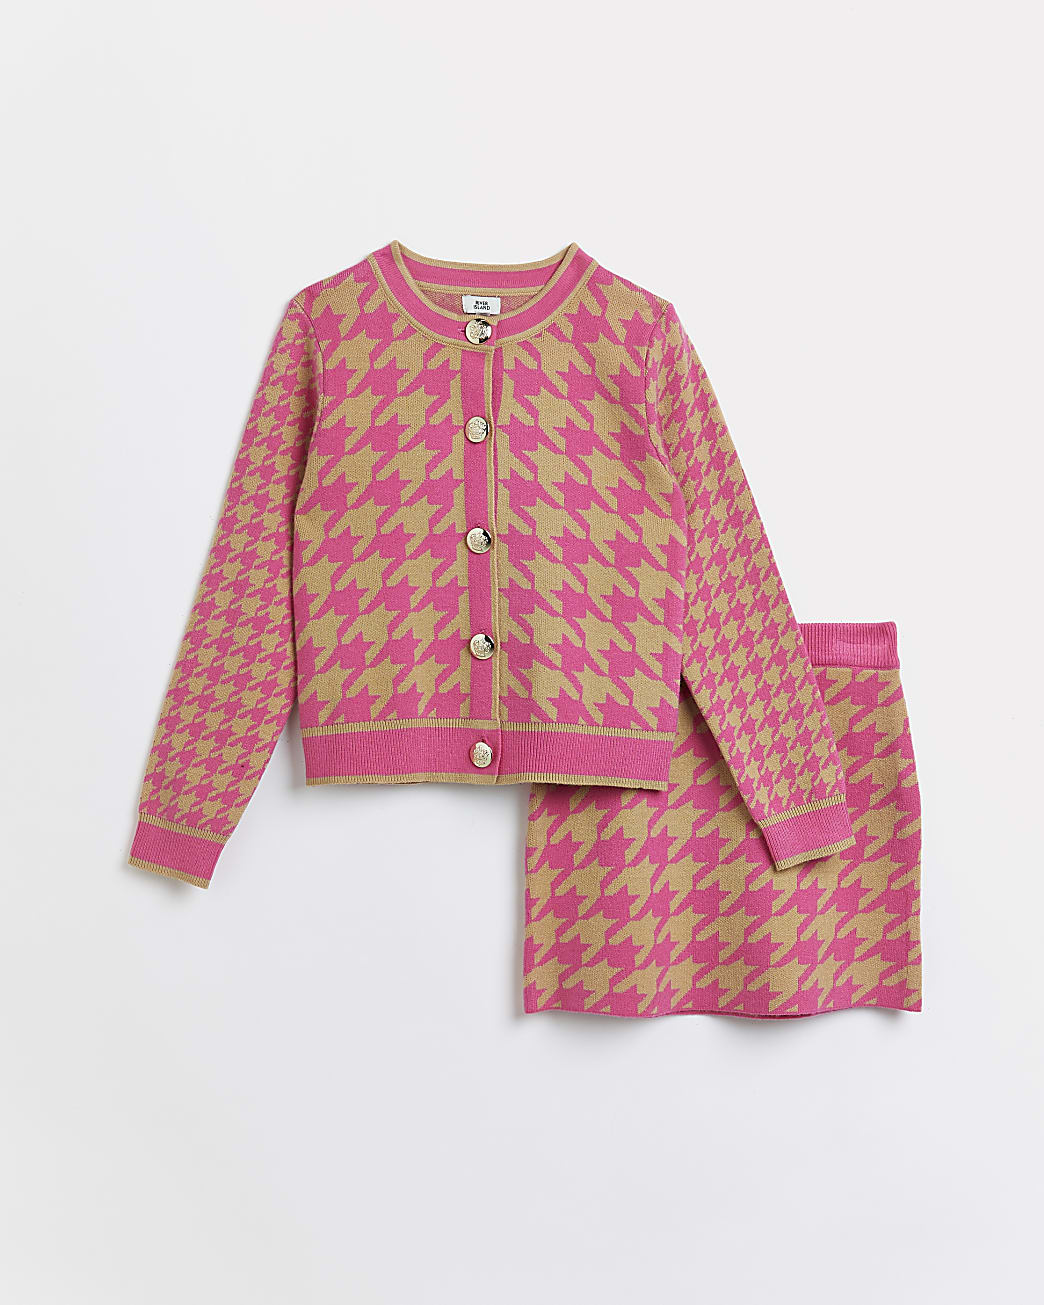 Girls pink dogtooth cardigan and skirt outfit